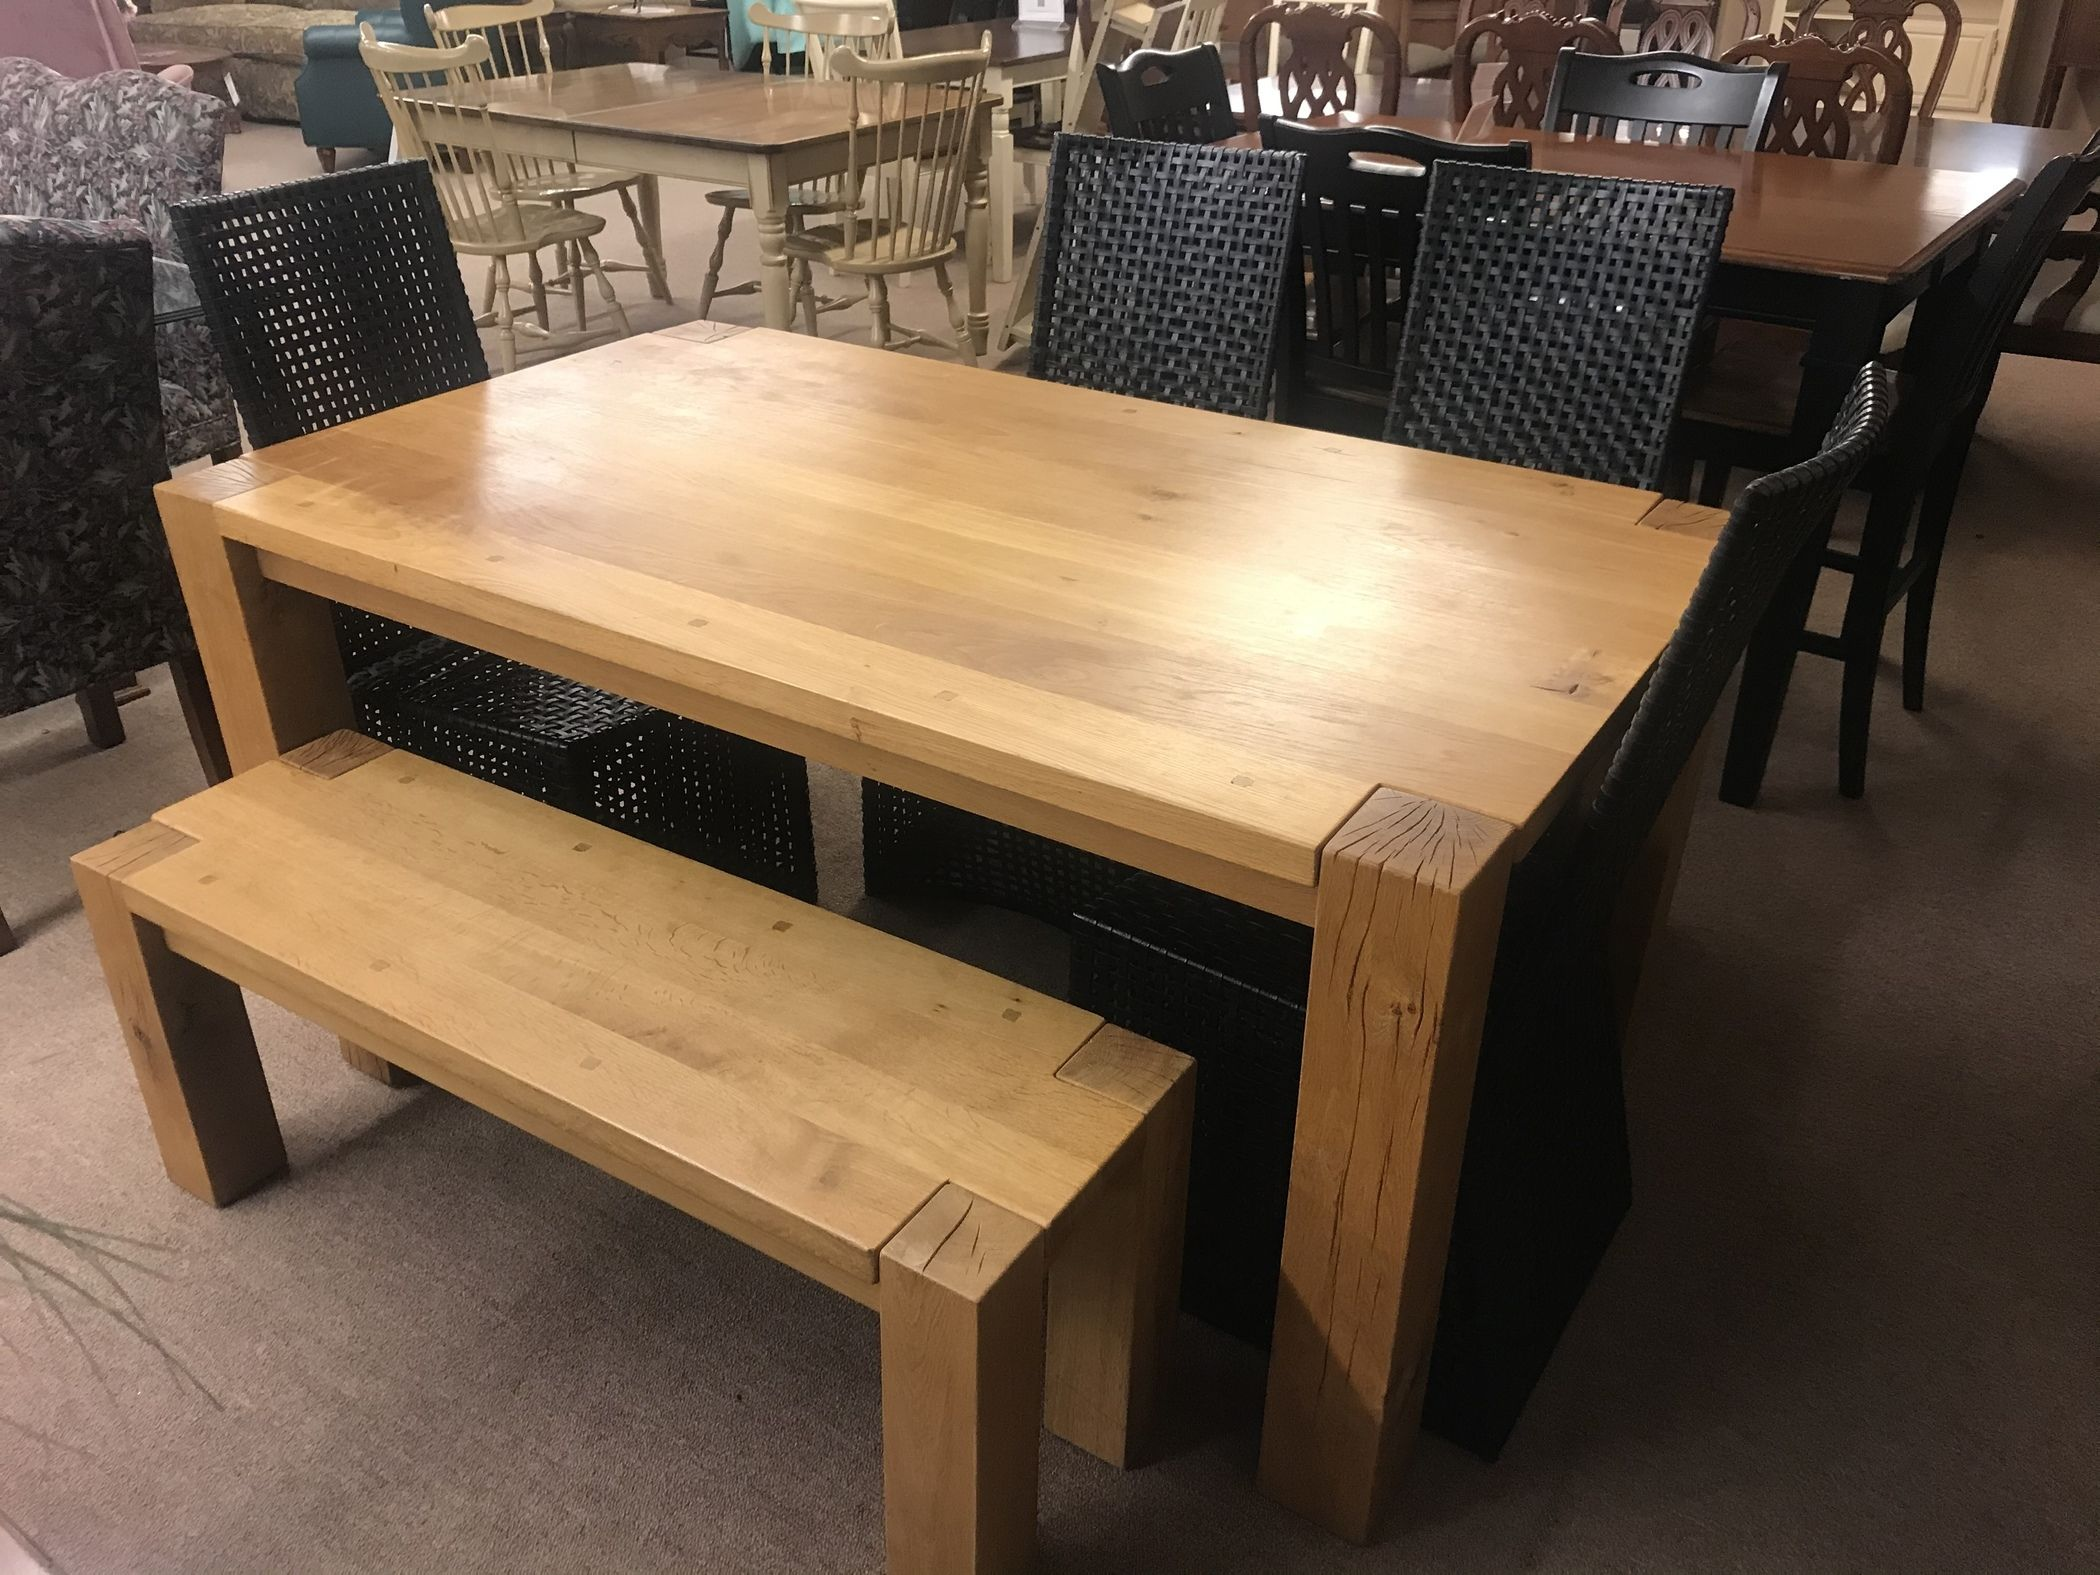 Butcher Block Dining Table Set Delmarva Furniture Consignment